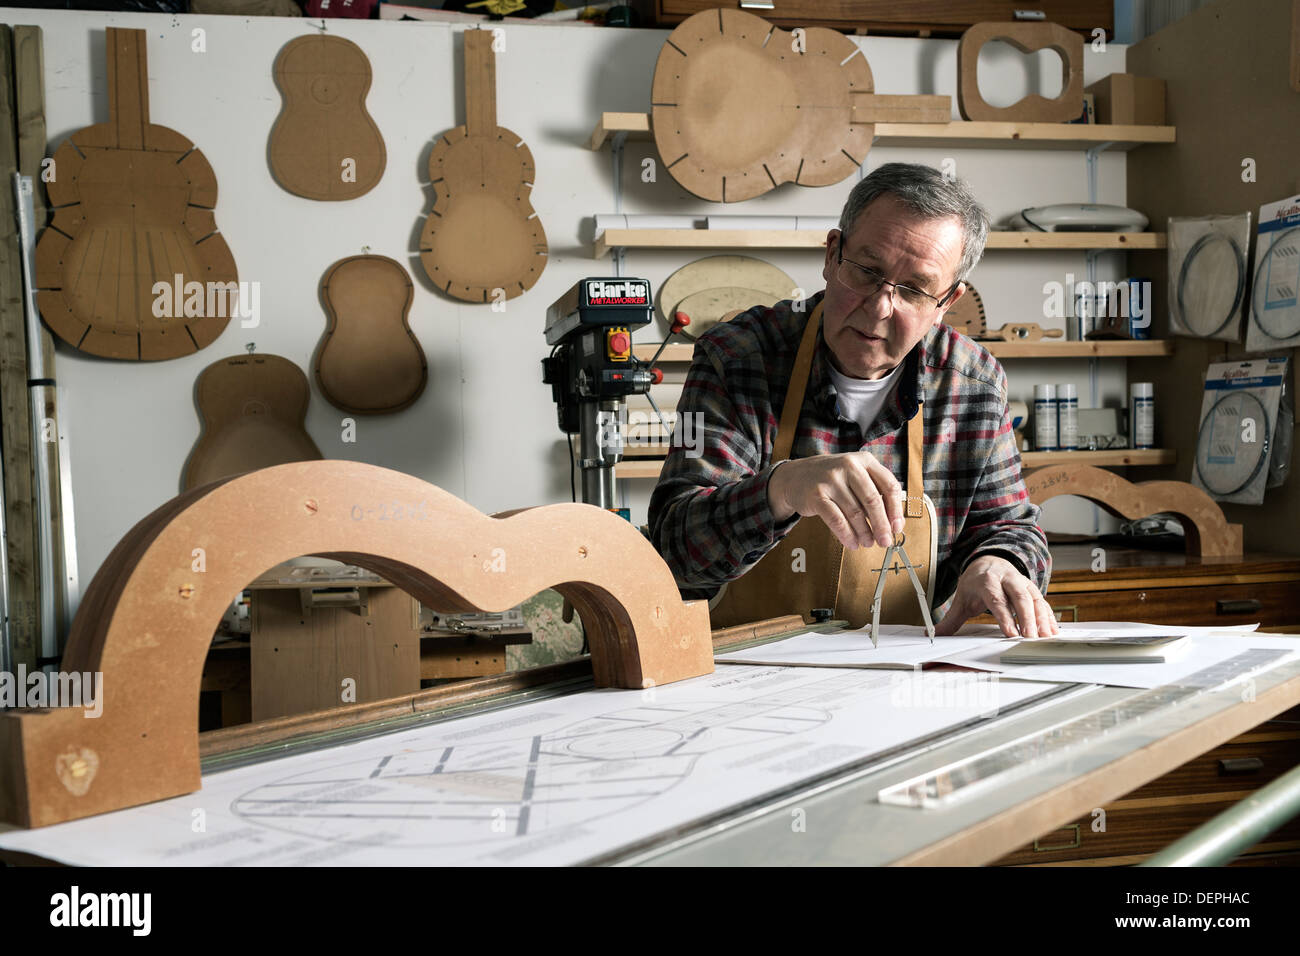 Guitar maker working on plans for an acoustic guitar in workshop - Stock Image